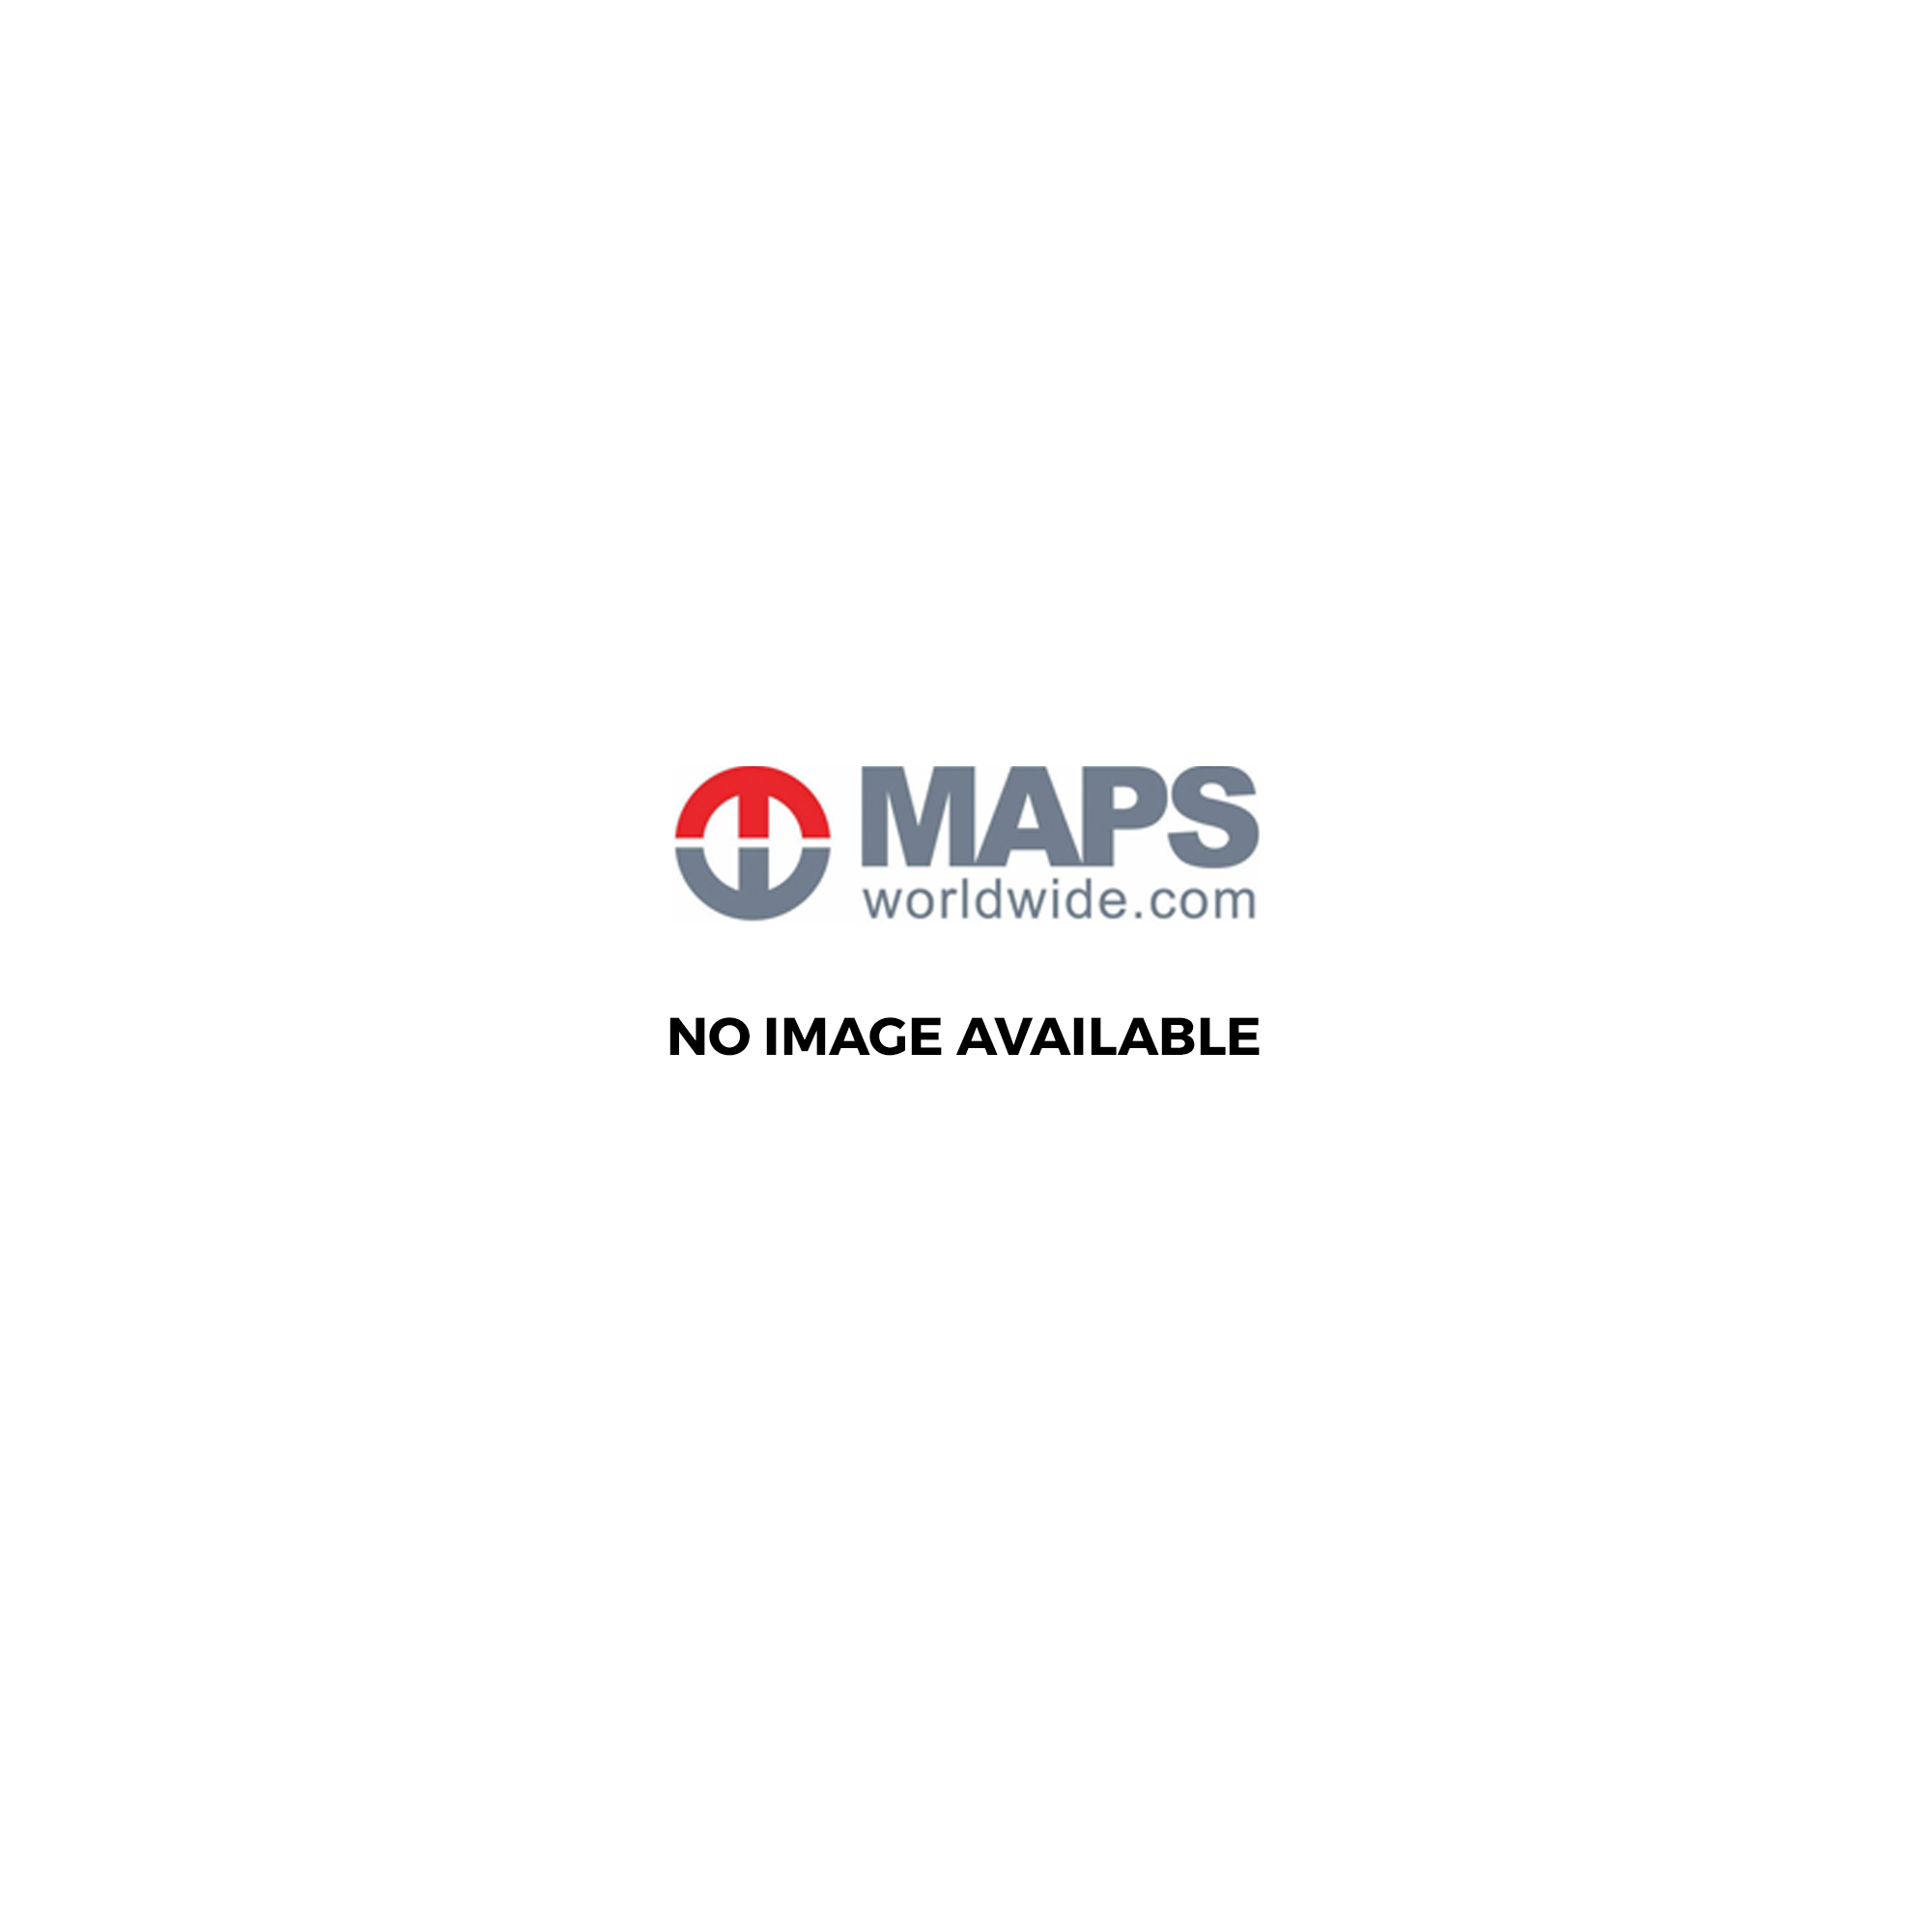 Michelin Regional Road Map 584: USA South Eastern